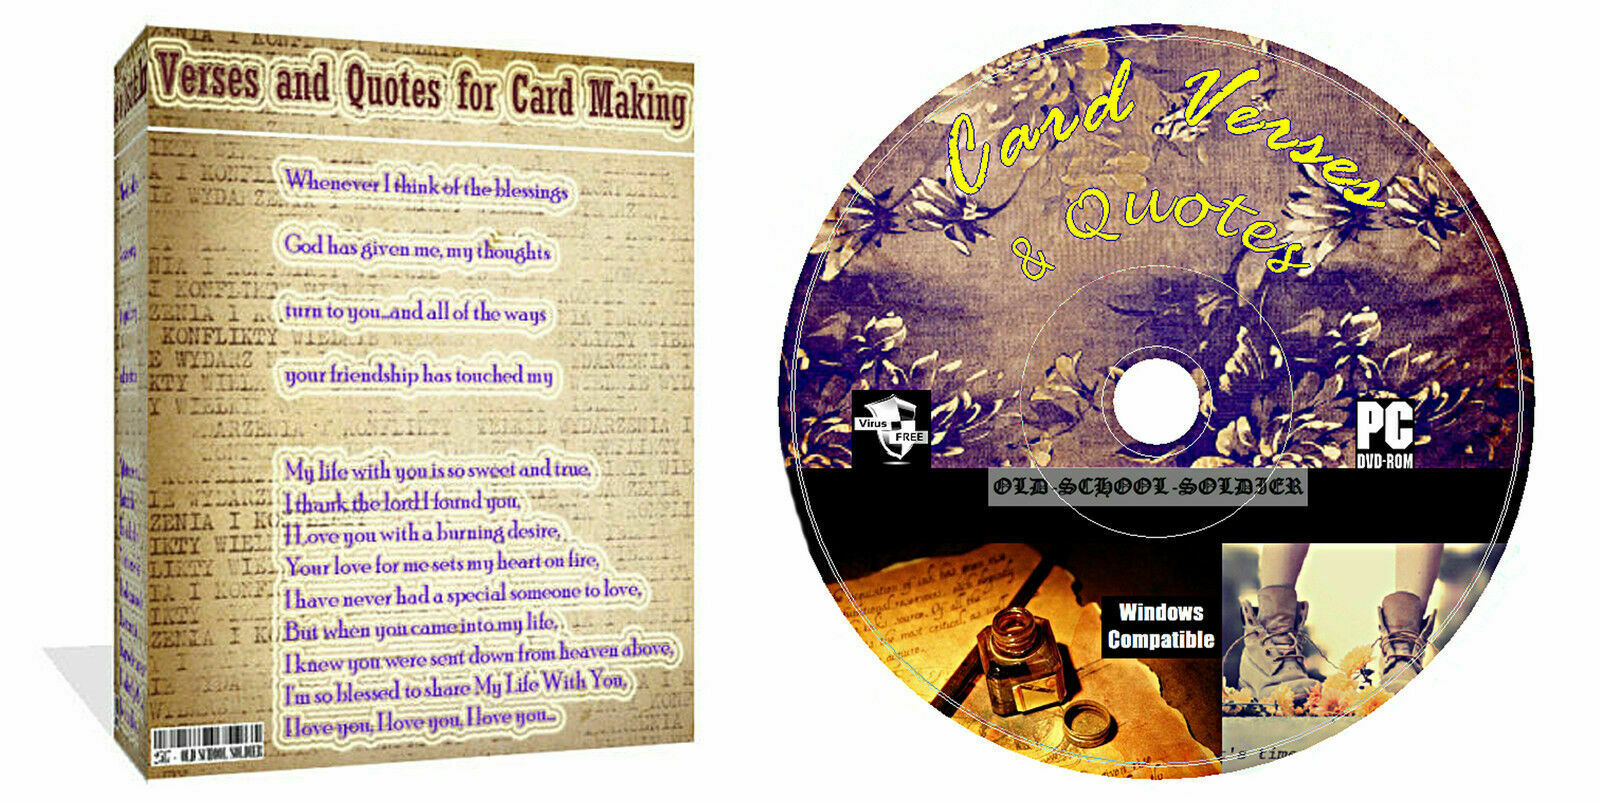 20000 Verses And Quotes CD Disk For Card Making Arts & Crafts + Decoupage Extra